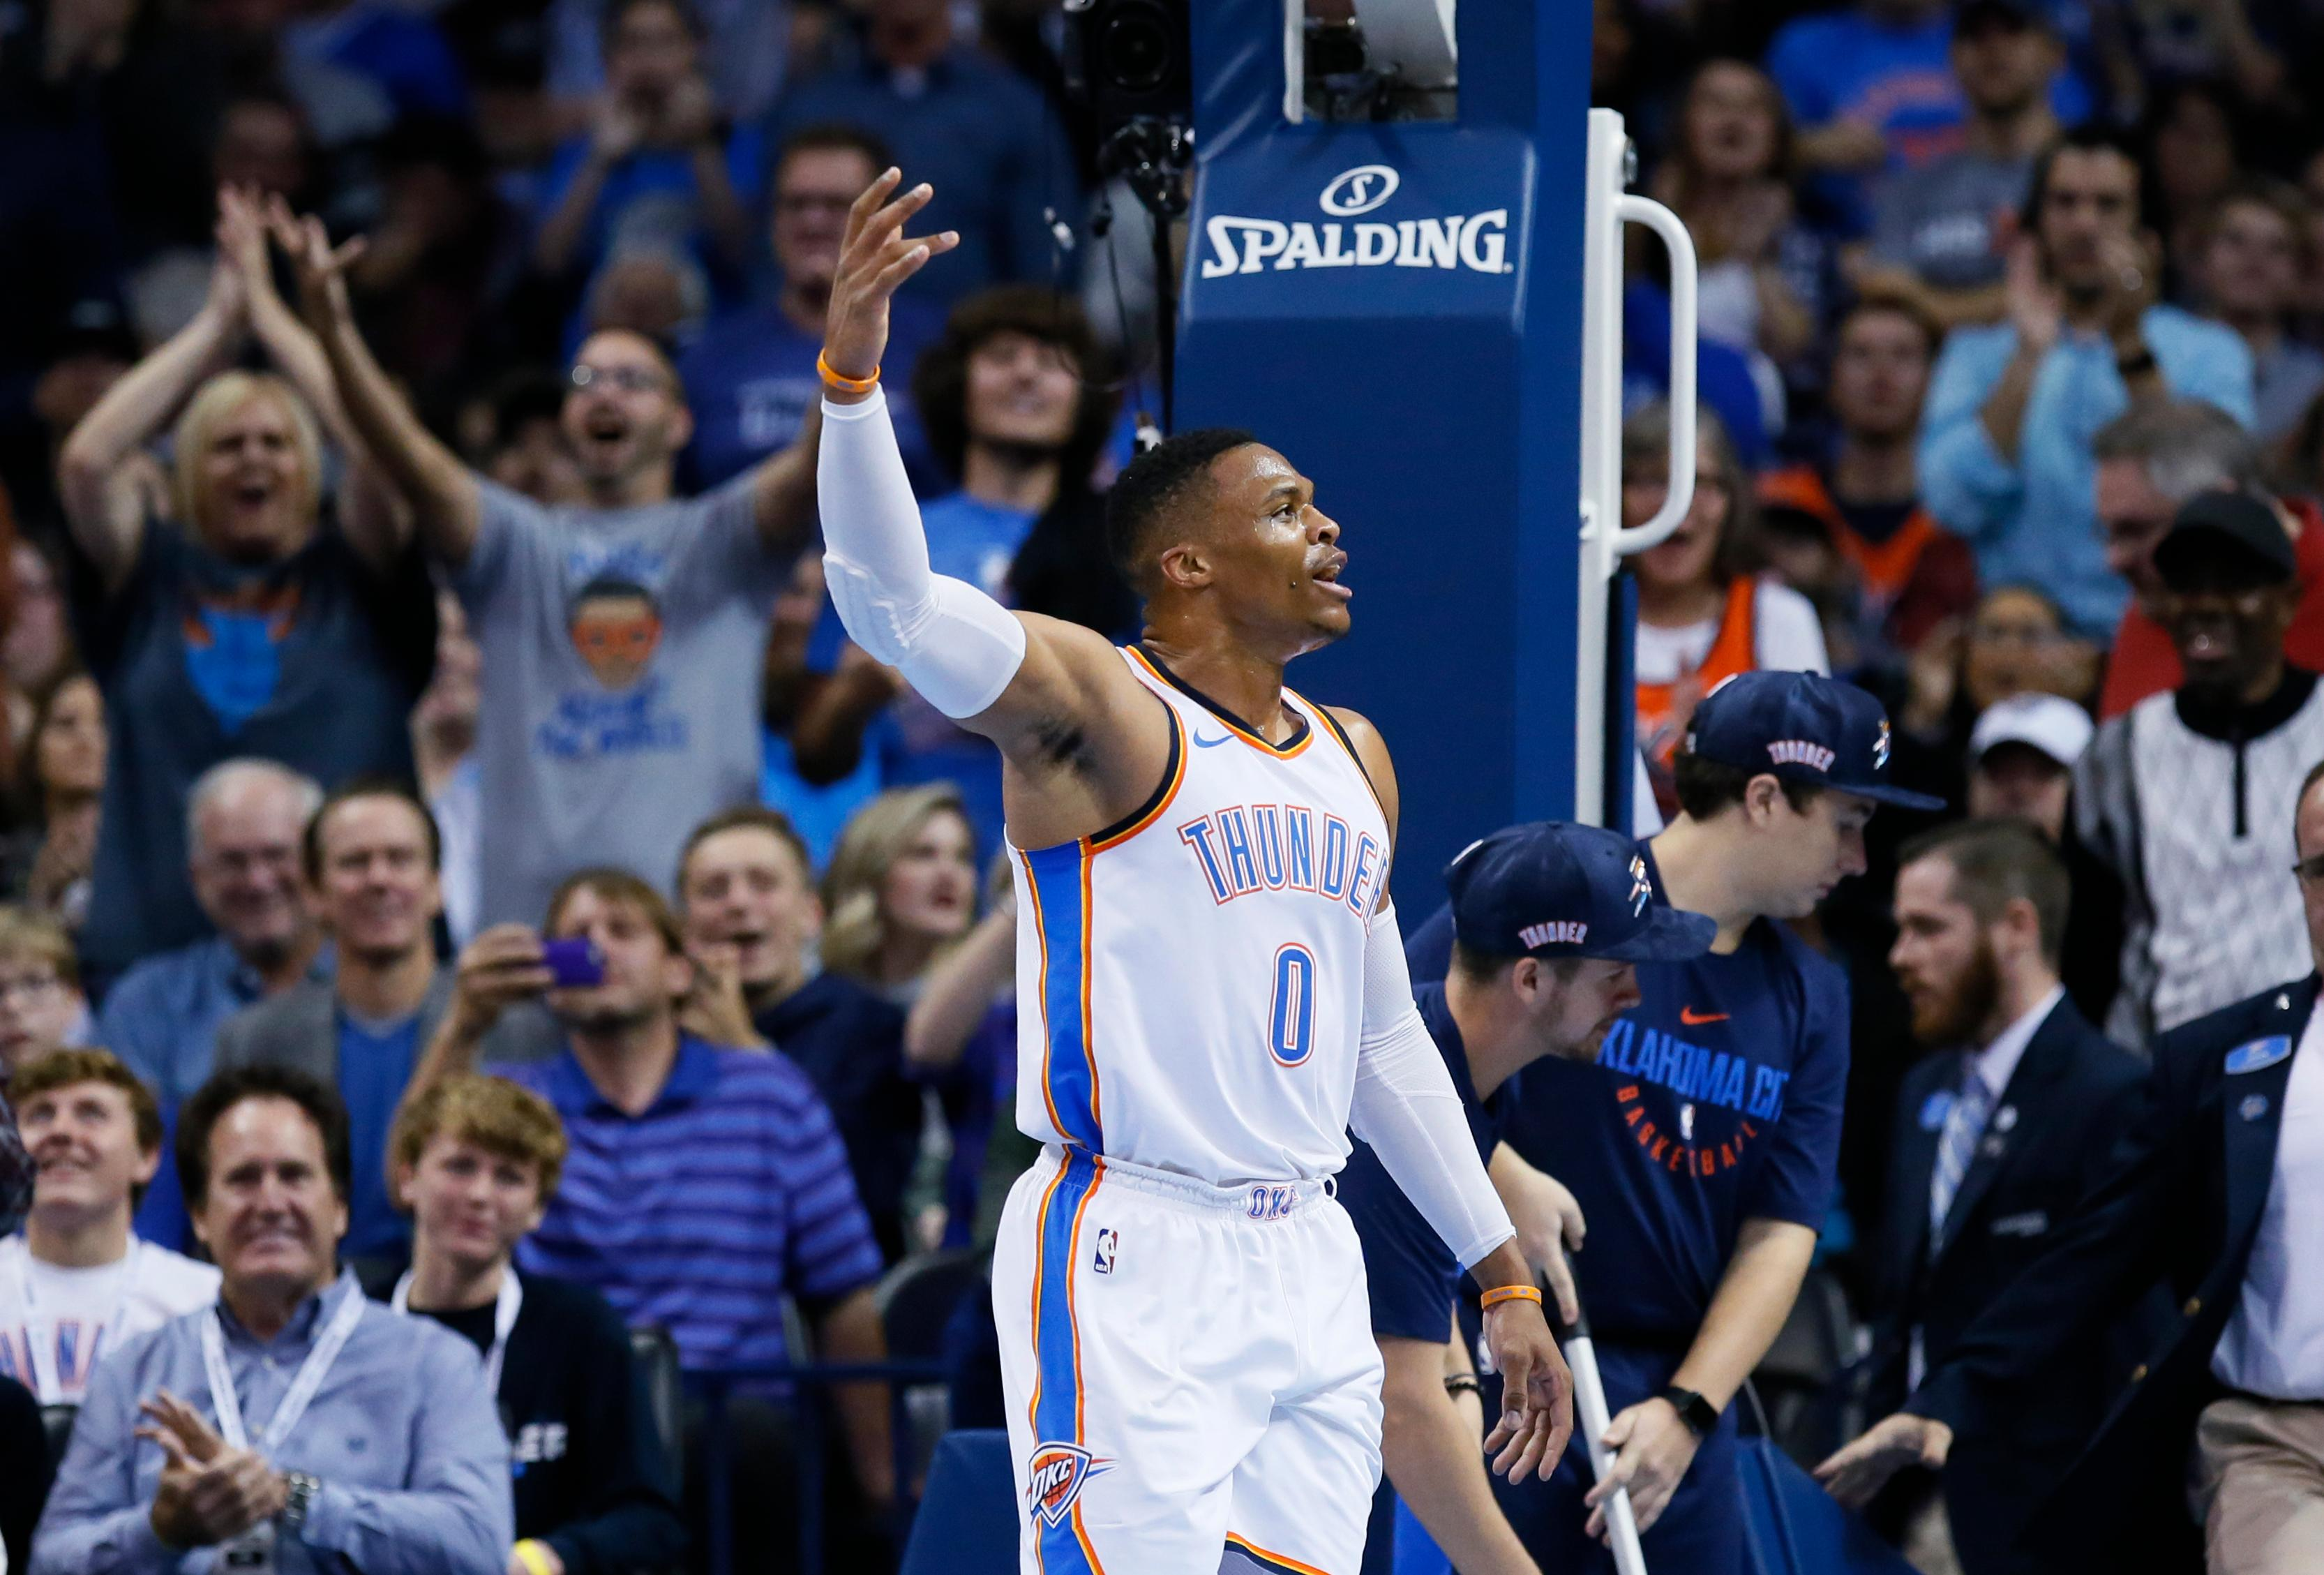 Oklahoma City Thunder guard Russell Westbrook (0) gestures to the crowd after scoring a basket in the first half of an NBA basketball game against the Los Angeles Clippers in Oklahoma City, Friday, Nov. 10, 2017. (AP Photo/Sue Ogrocki)